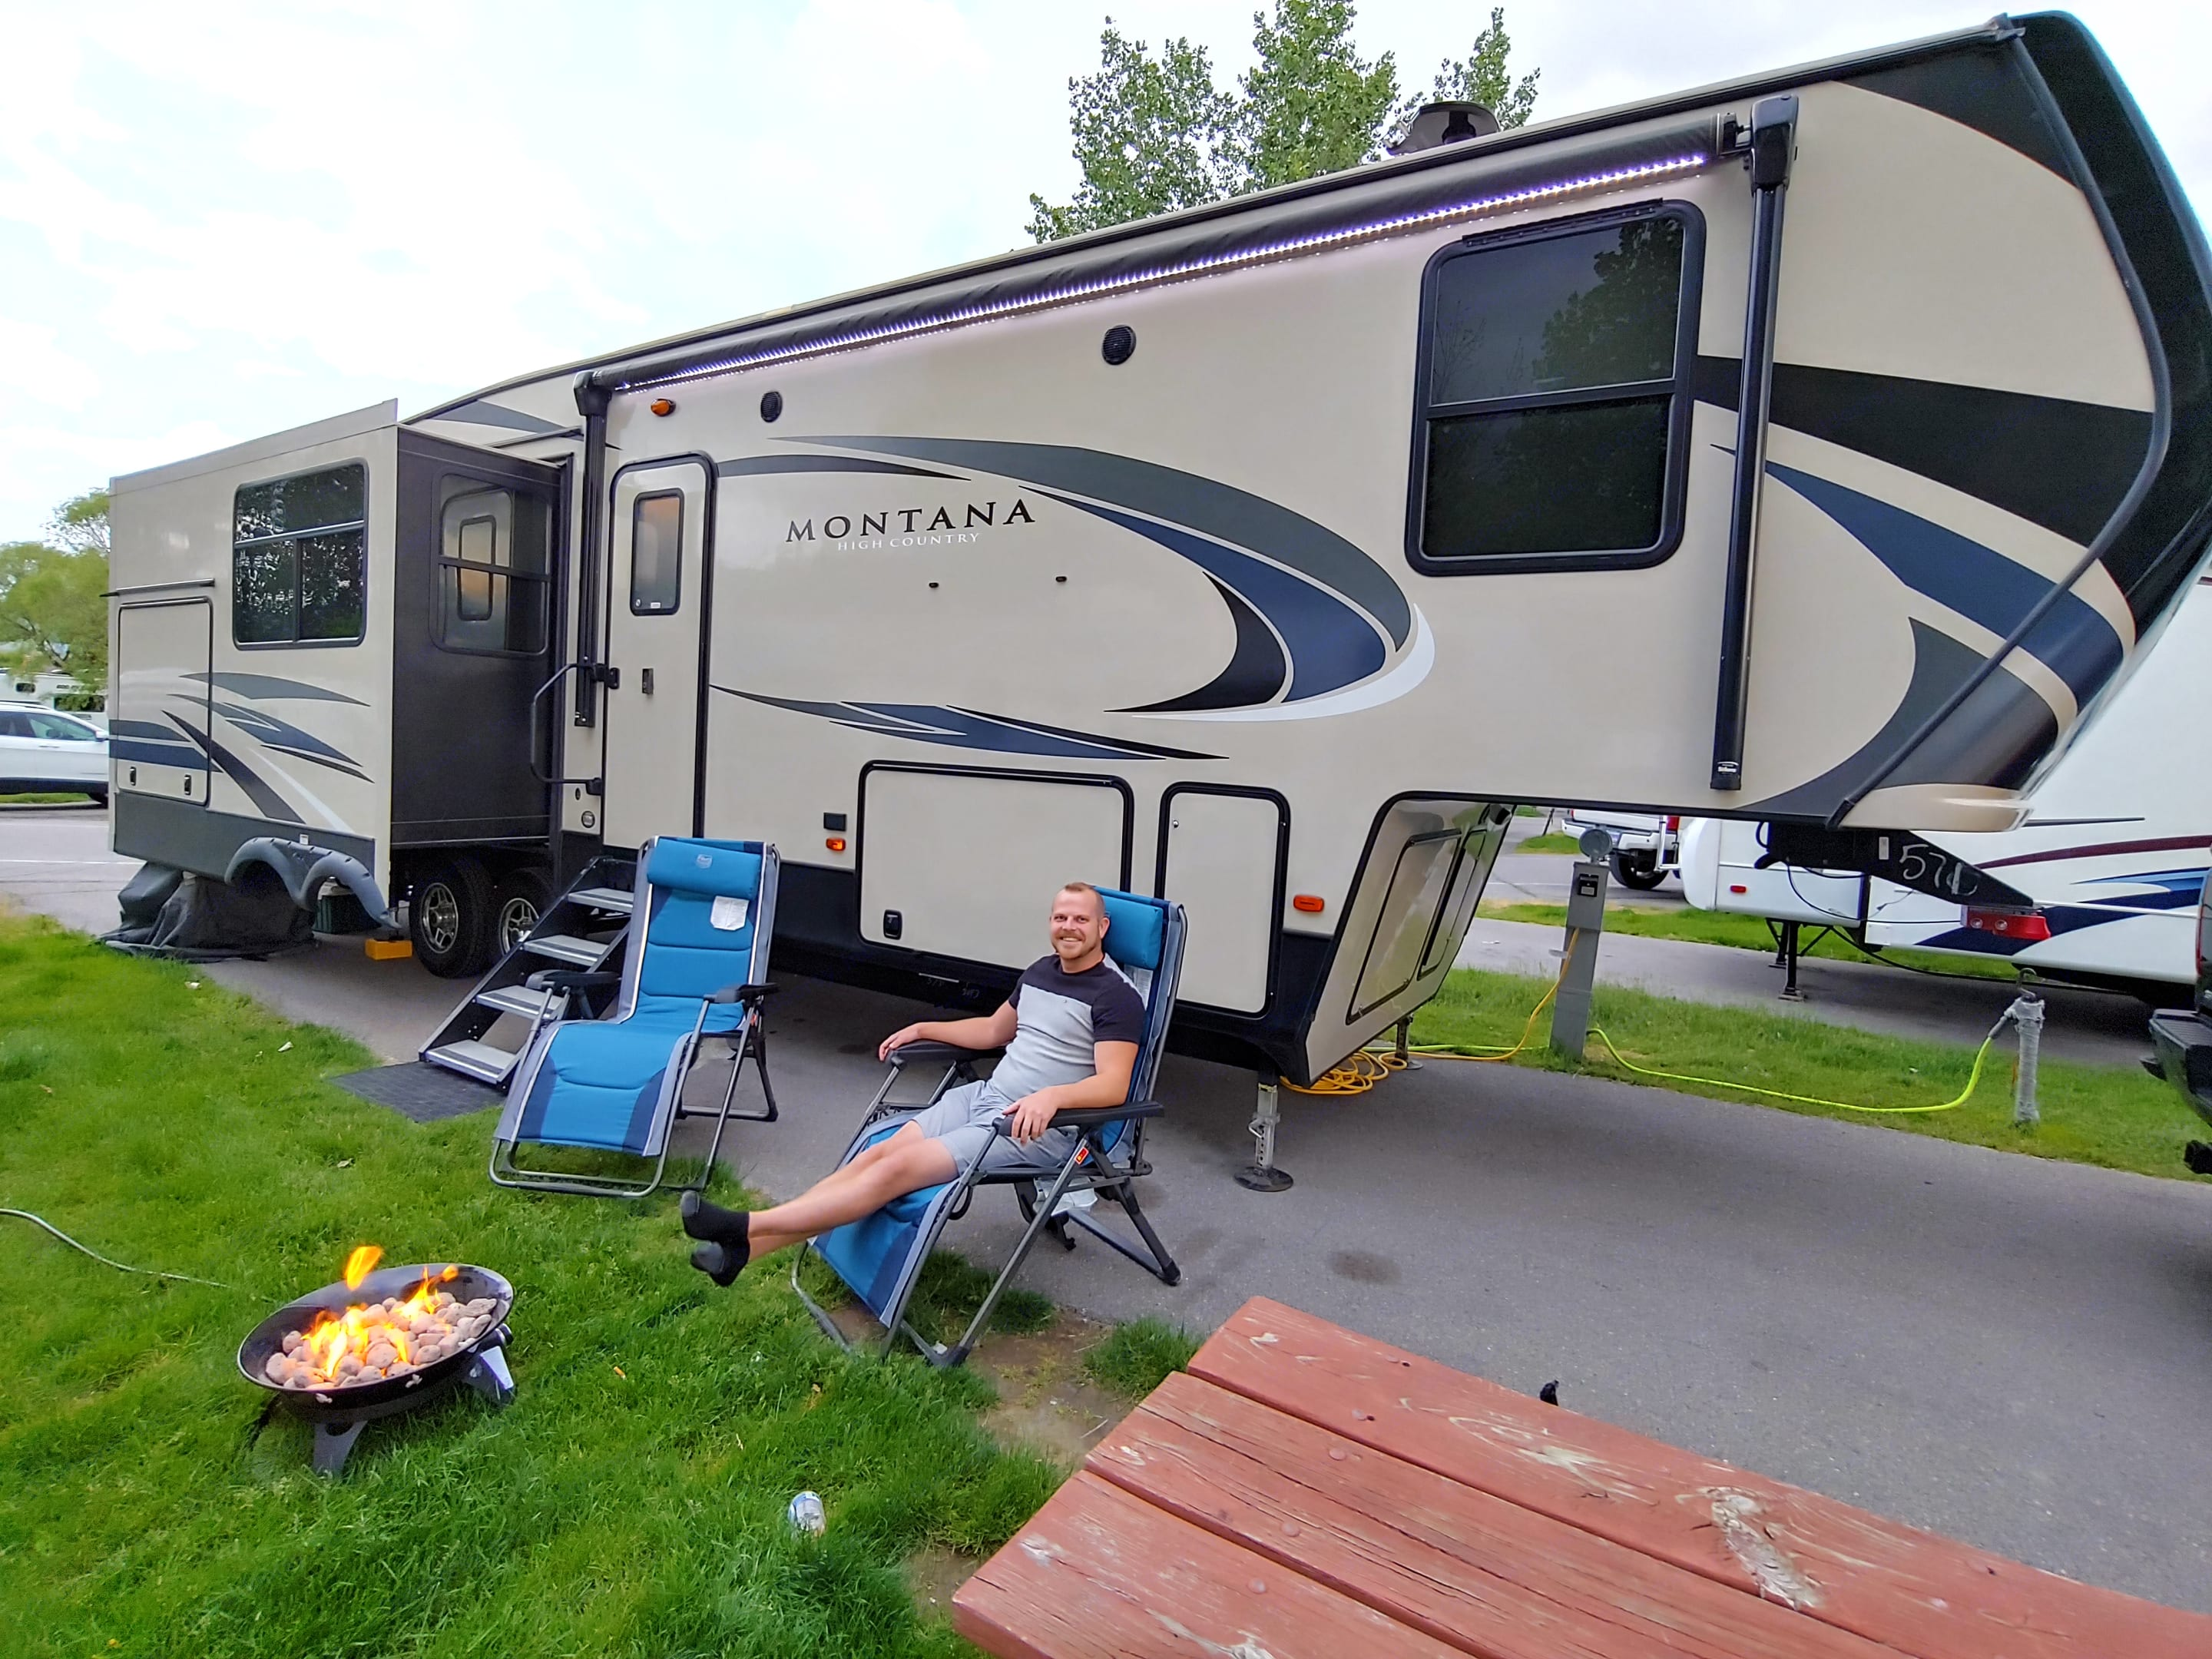 Exterior LED lighting, speakers, large awning, mood-lit mini-kitchen with fridge, microwave, and stove, and reclining camp chairs.. Keystone Montana High Country 2019